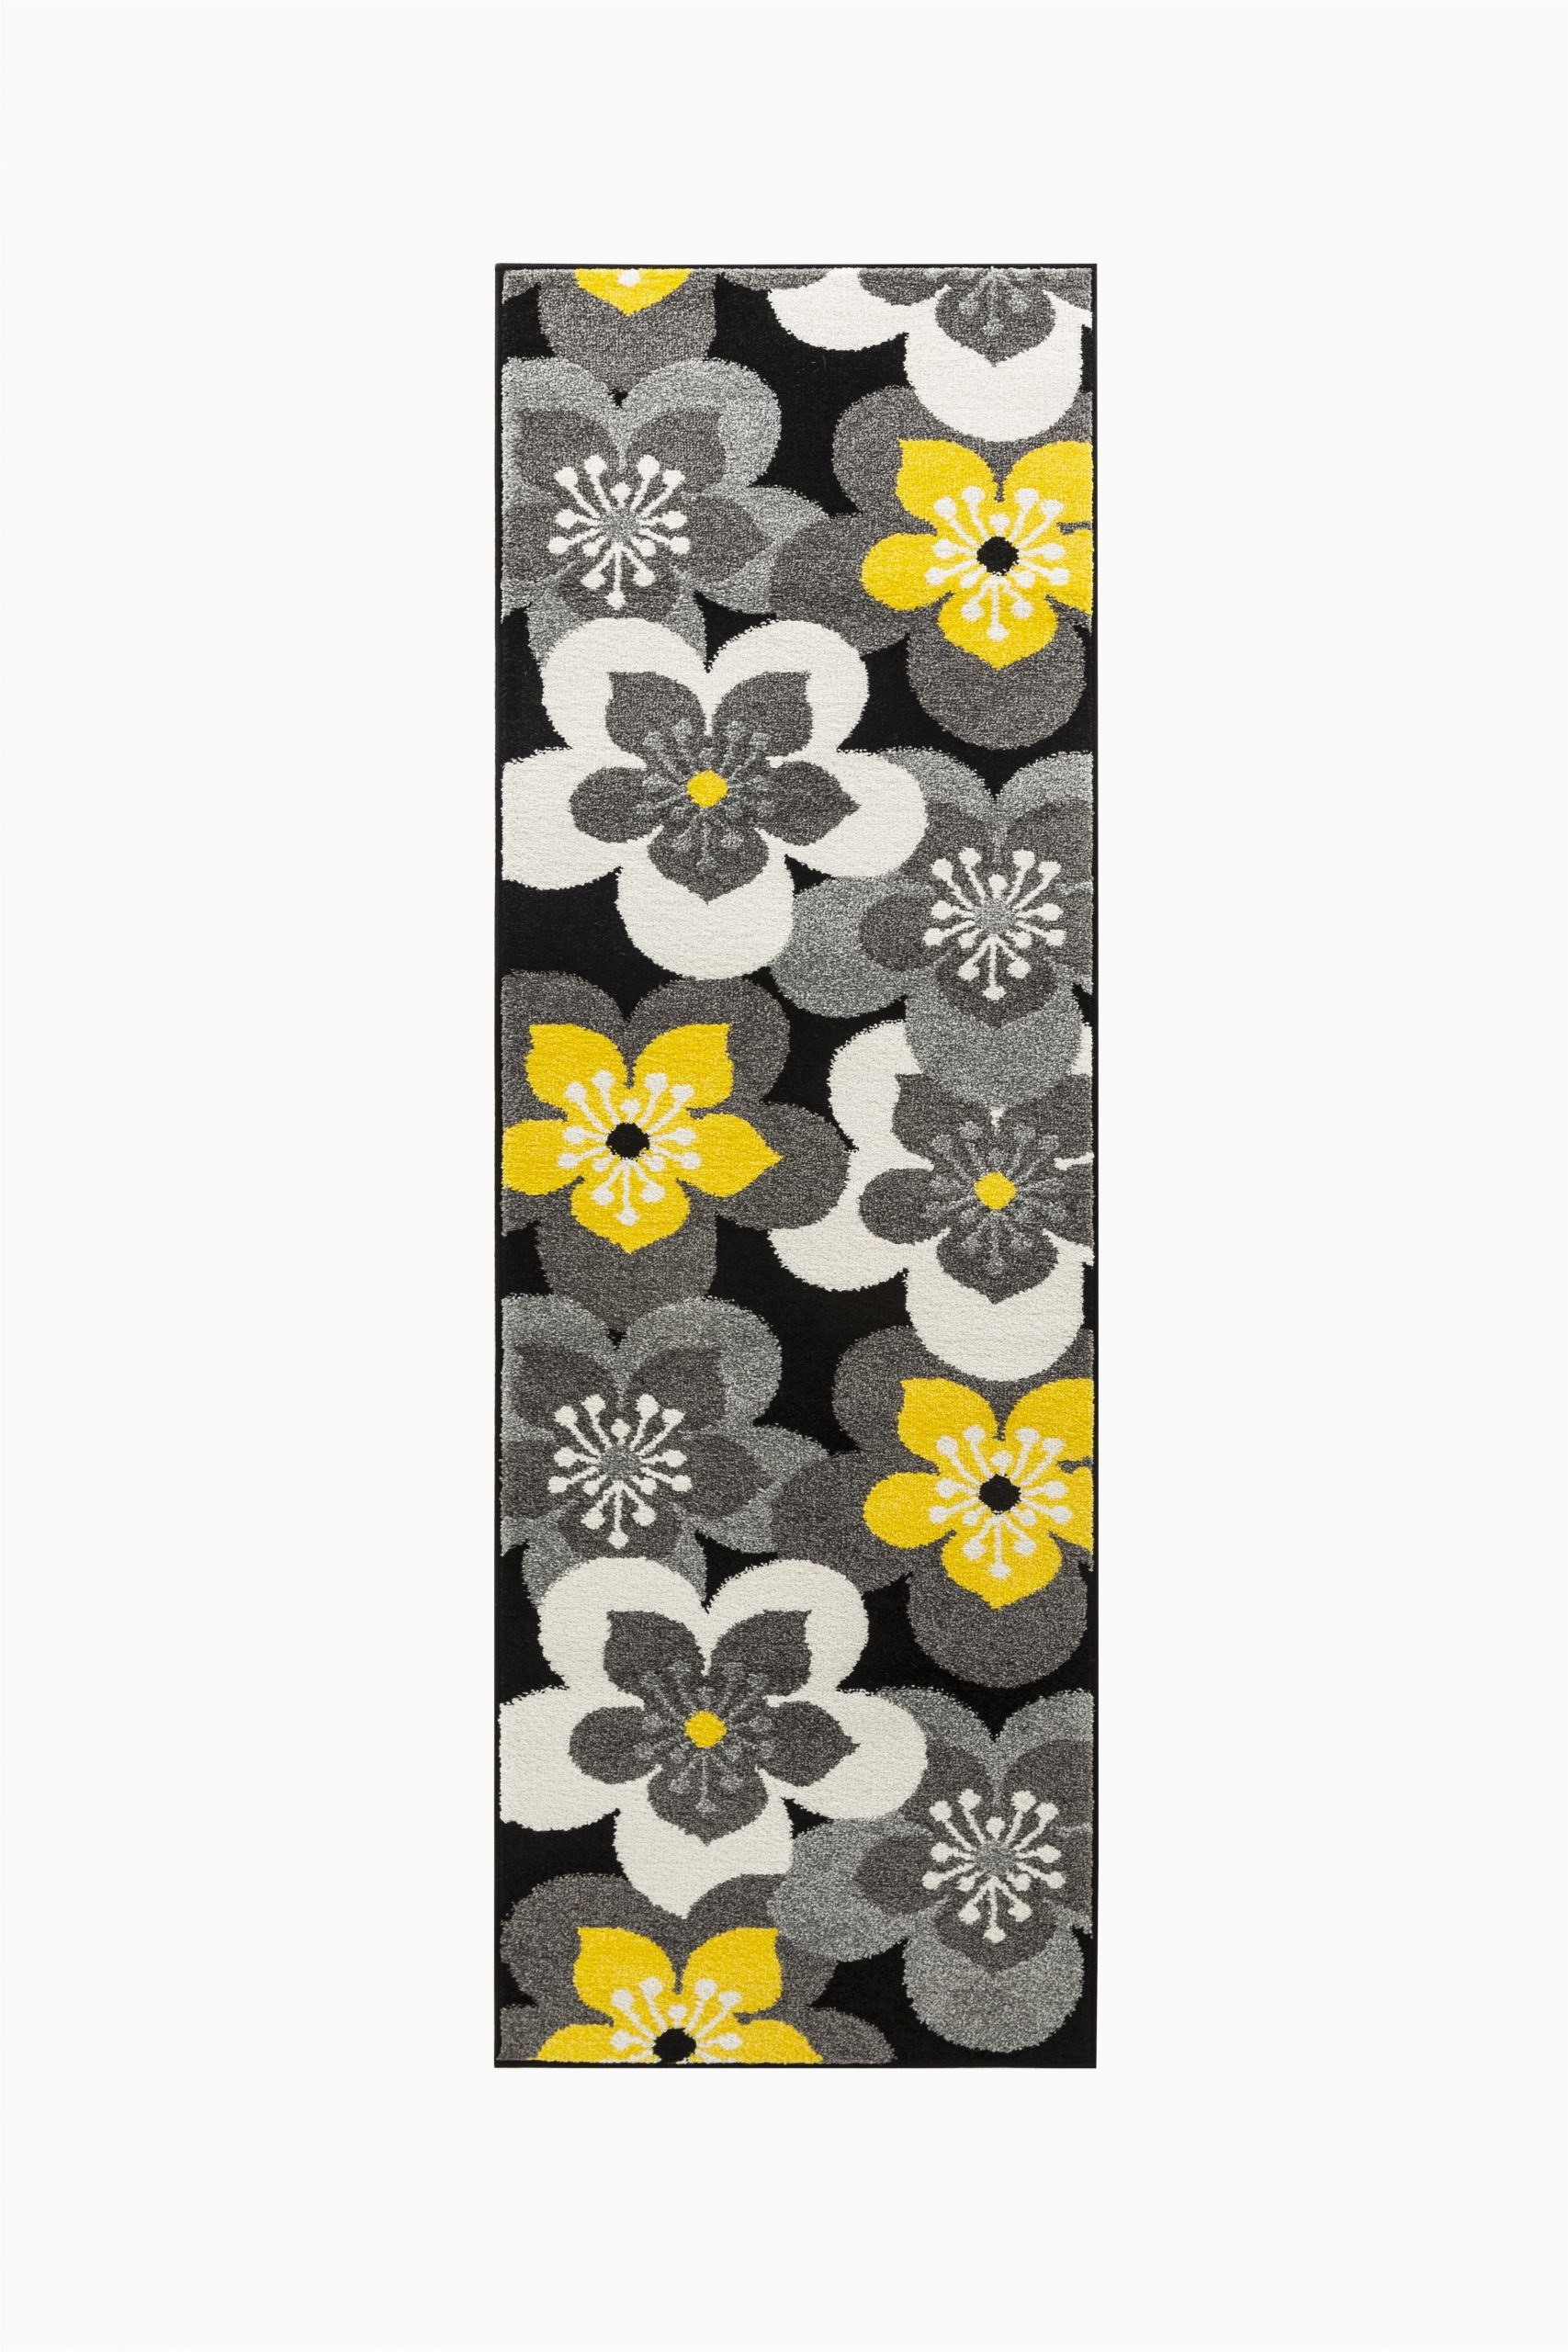 Black Grey and Yellow area Rug Oxford Collection Rugs Yellow Black Grey White Modern Floral Design Premium soft area Rug 2 X7 Runner Walmart